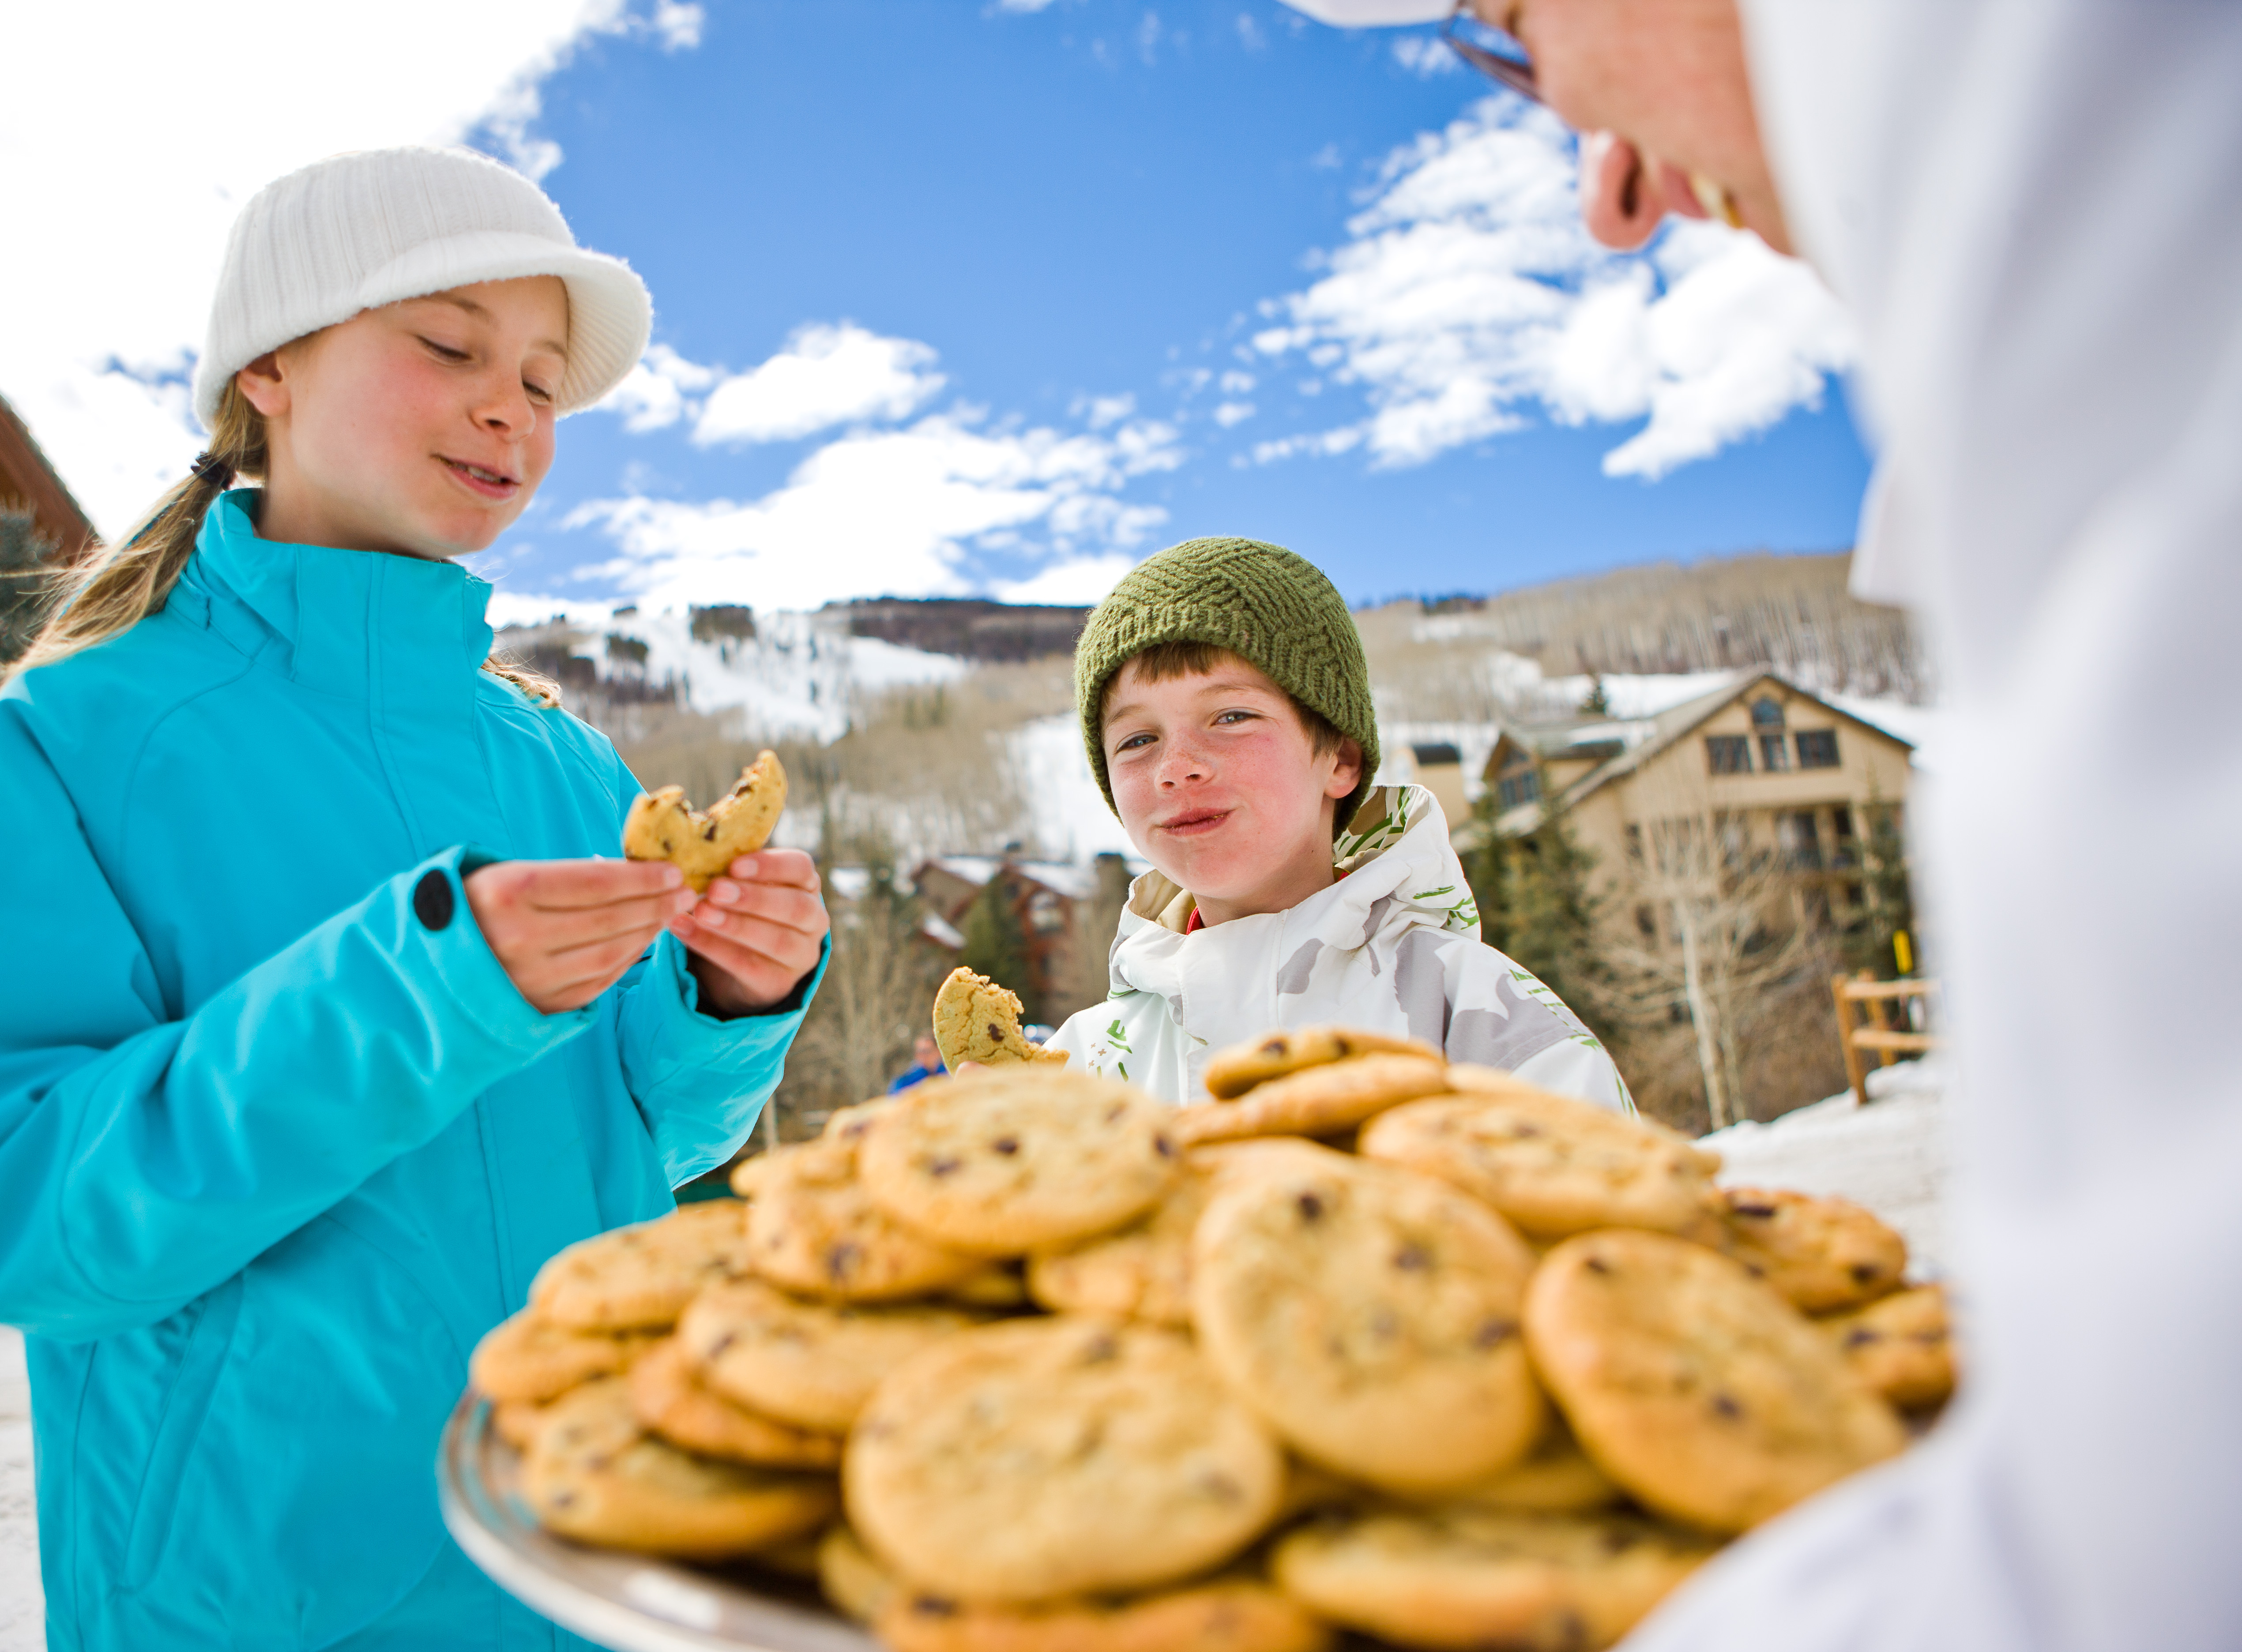 Young girl and boy with cheeky grins enjoying a plate of choc chip cookies